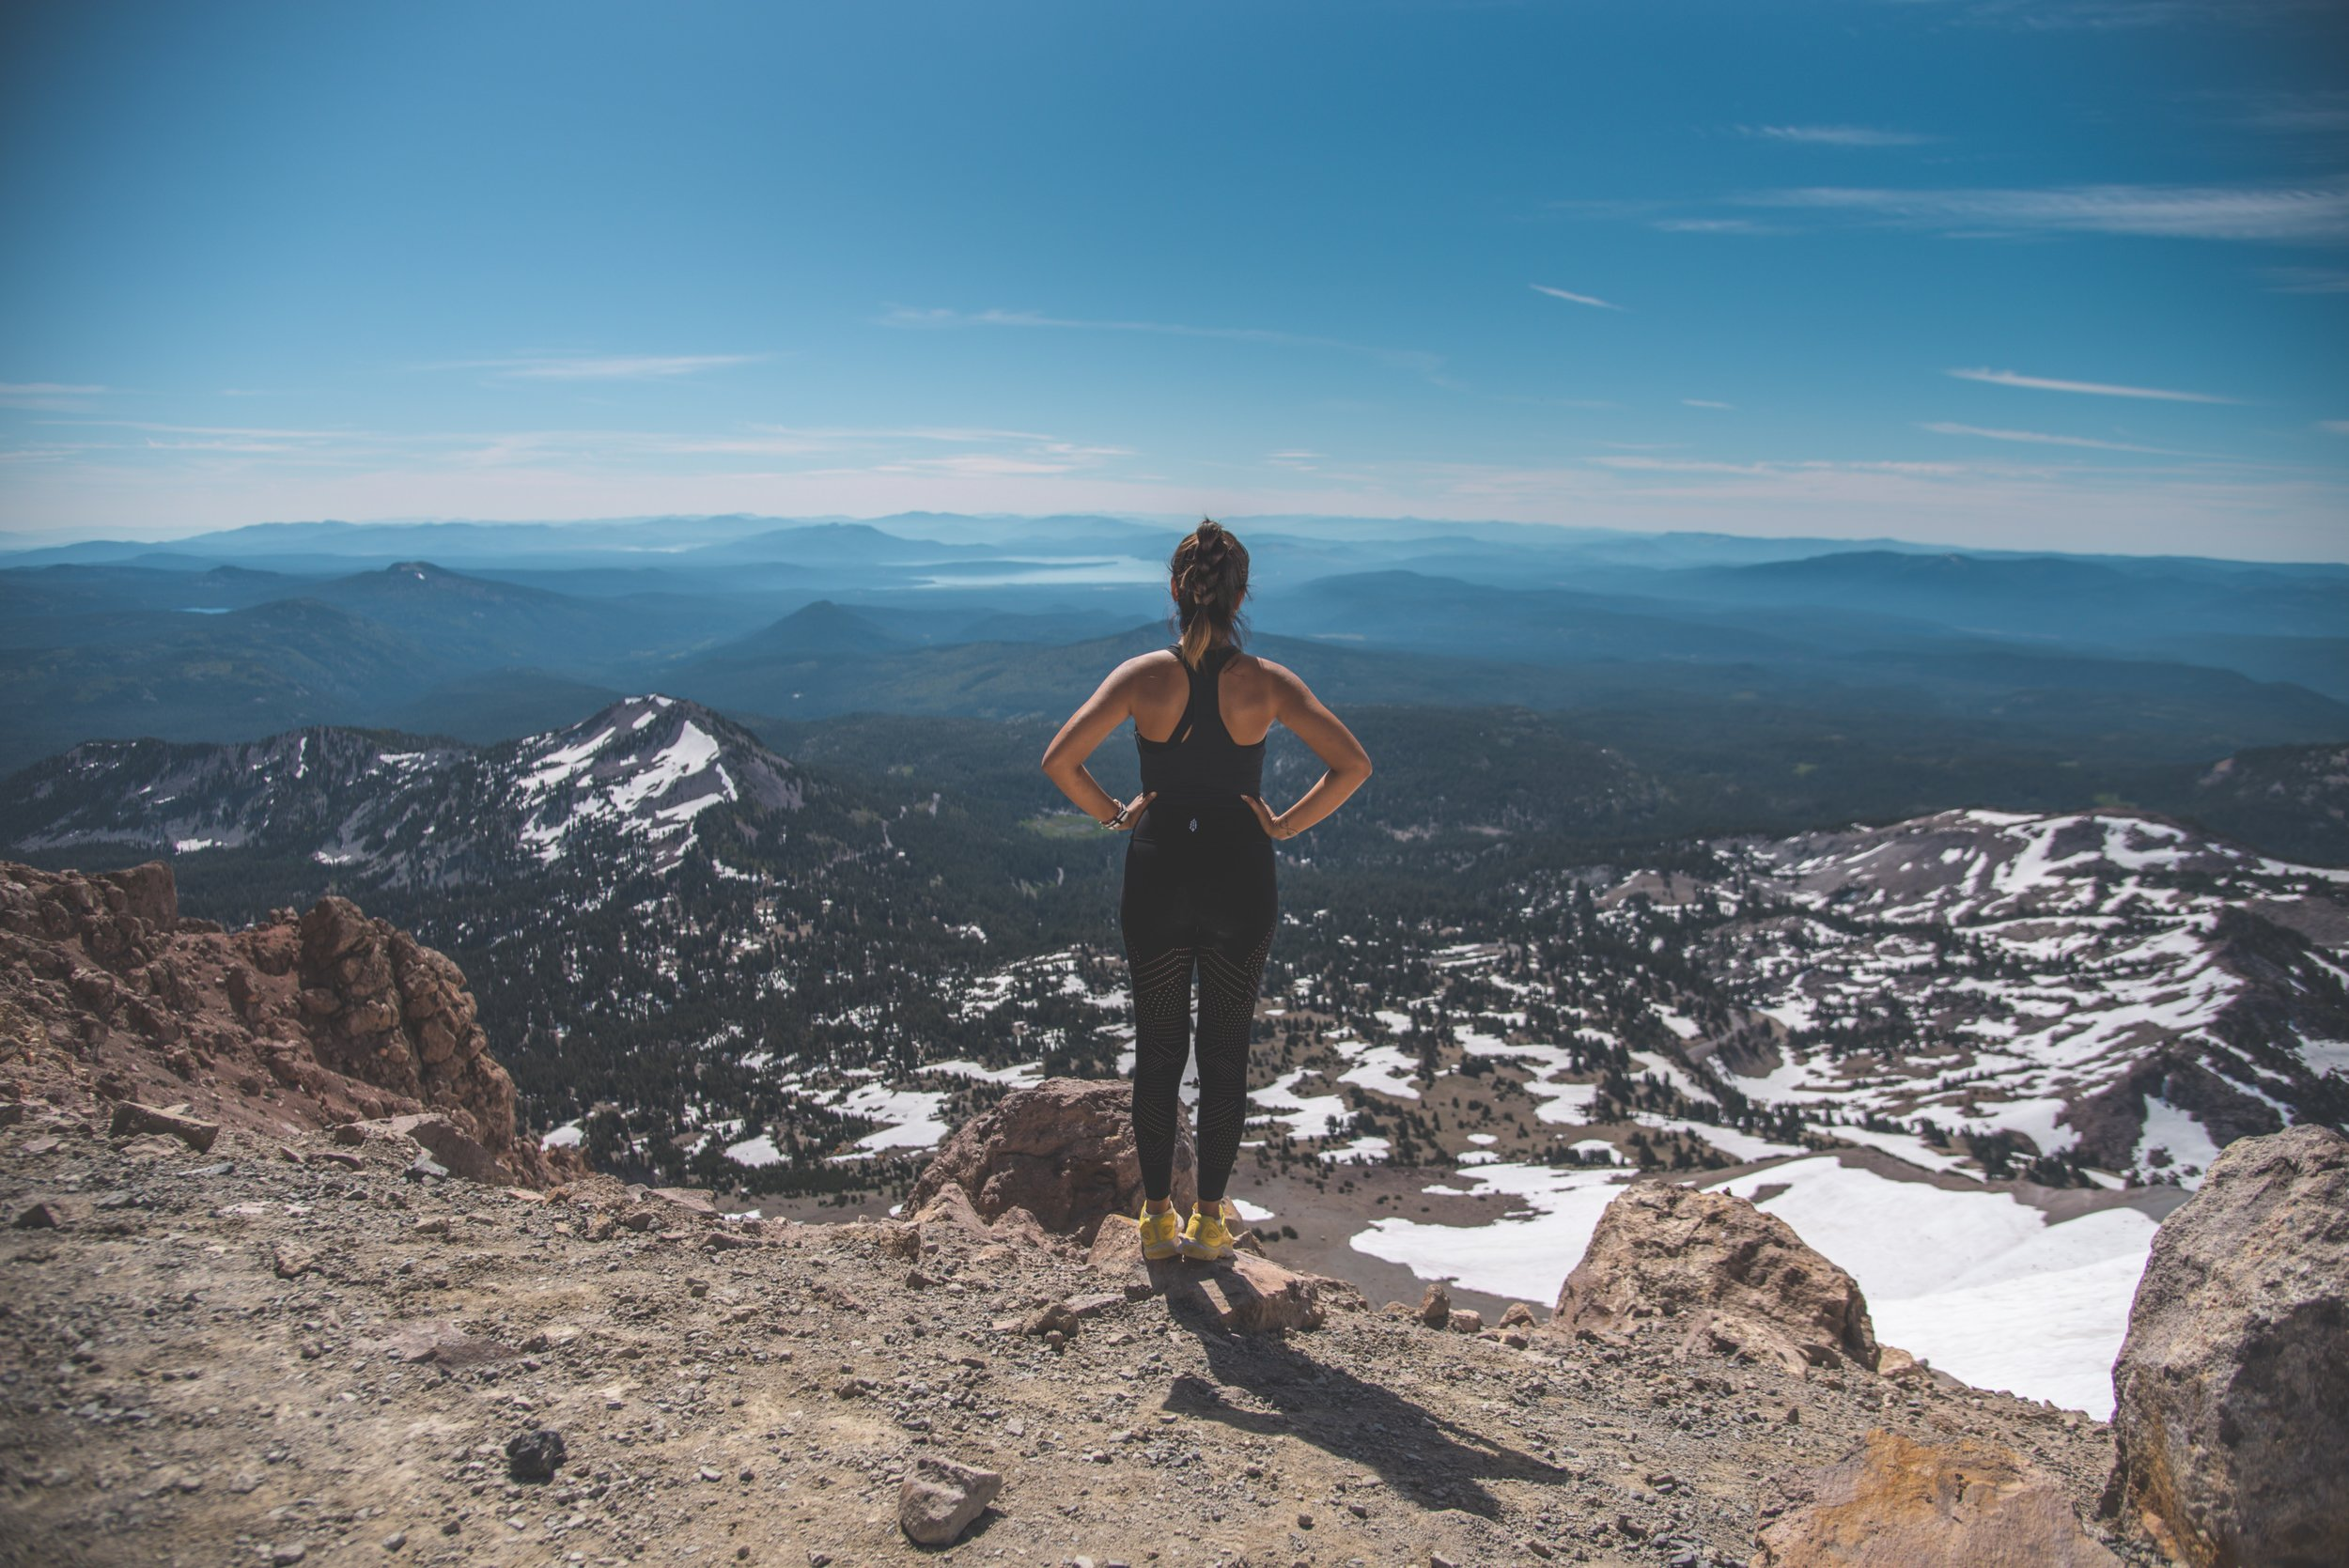 View from Lassen Peak - Photo by Matt Davey